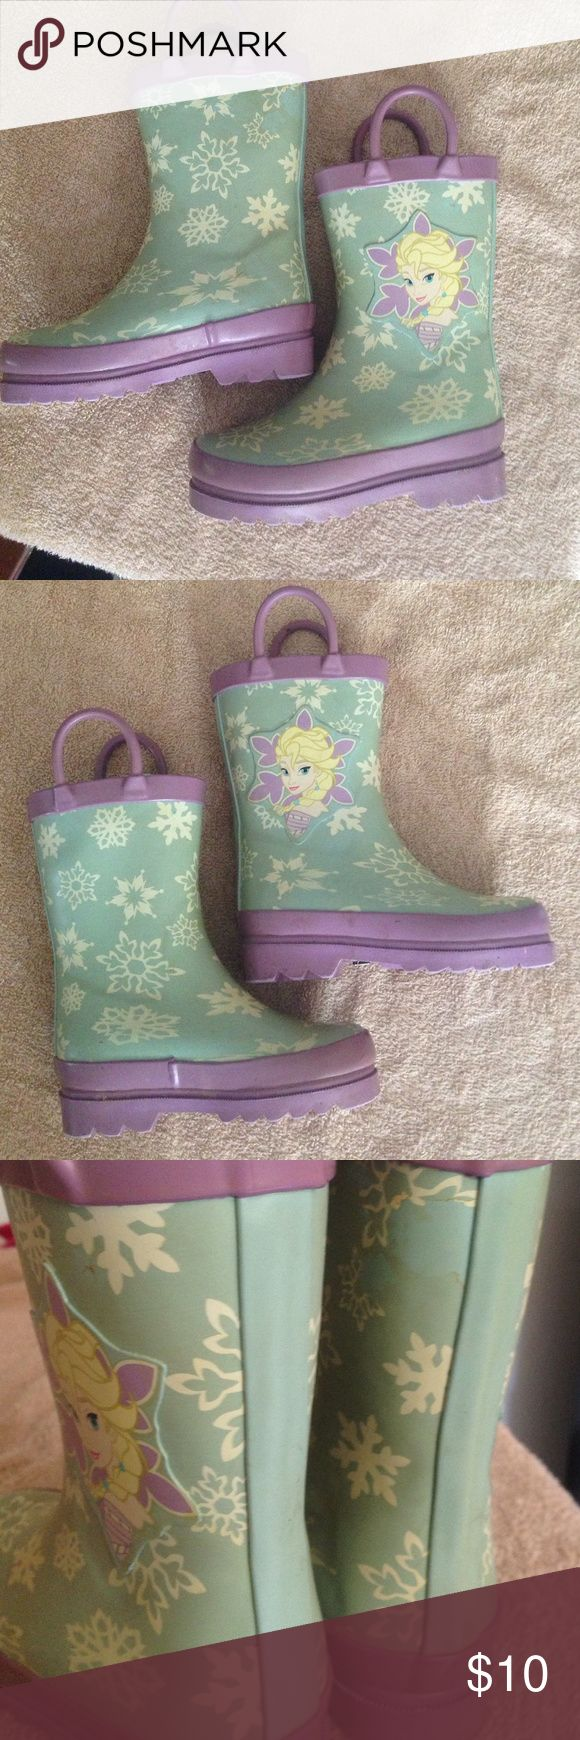 FROZEN toddler 7 rain boots Well loved FROZEN toddler rain boots size 7! they have a lot of discoloration but I have not attempted to wash them. they have great tread! doesntsay Shoes Rain & Snow Boots